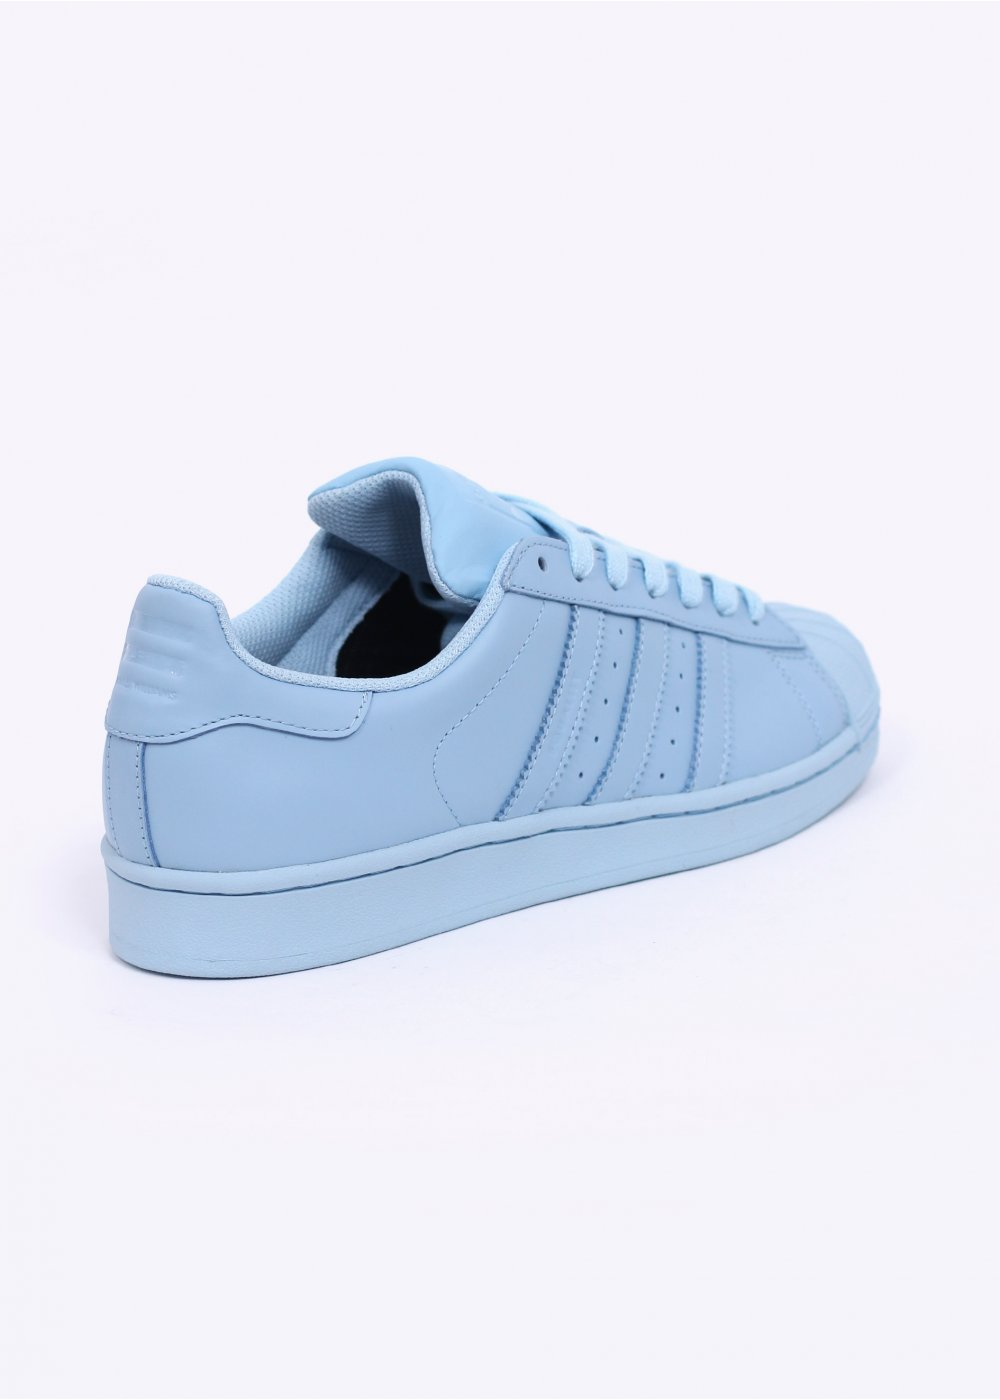 adidas superstar clear blue